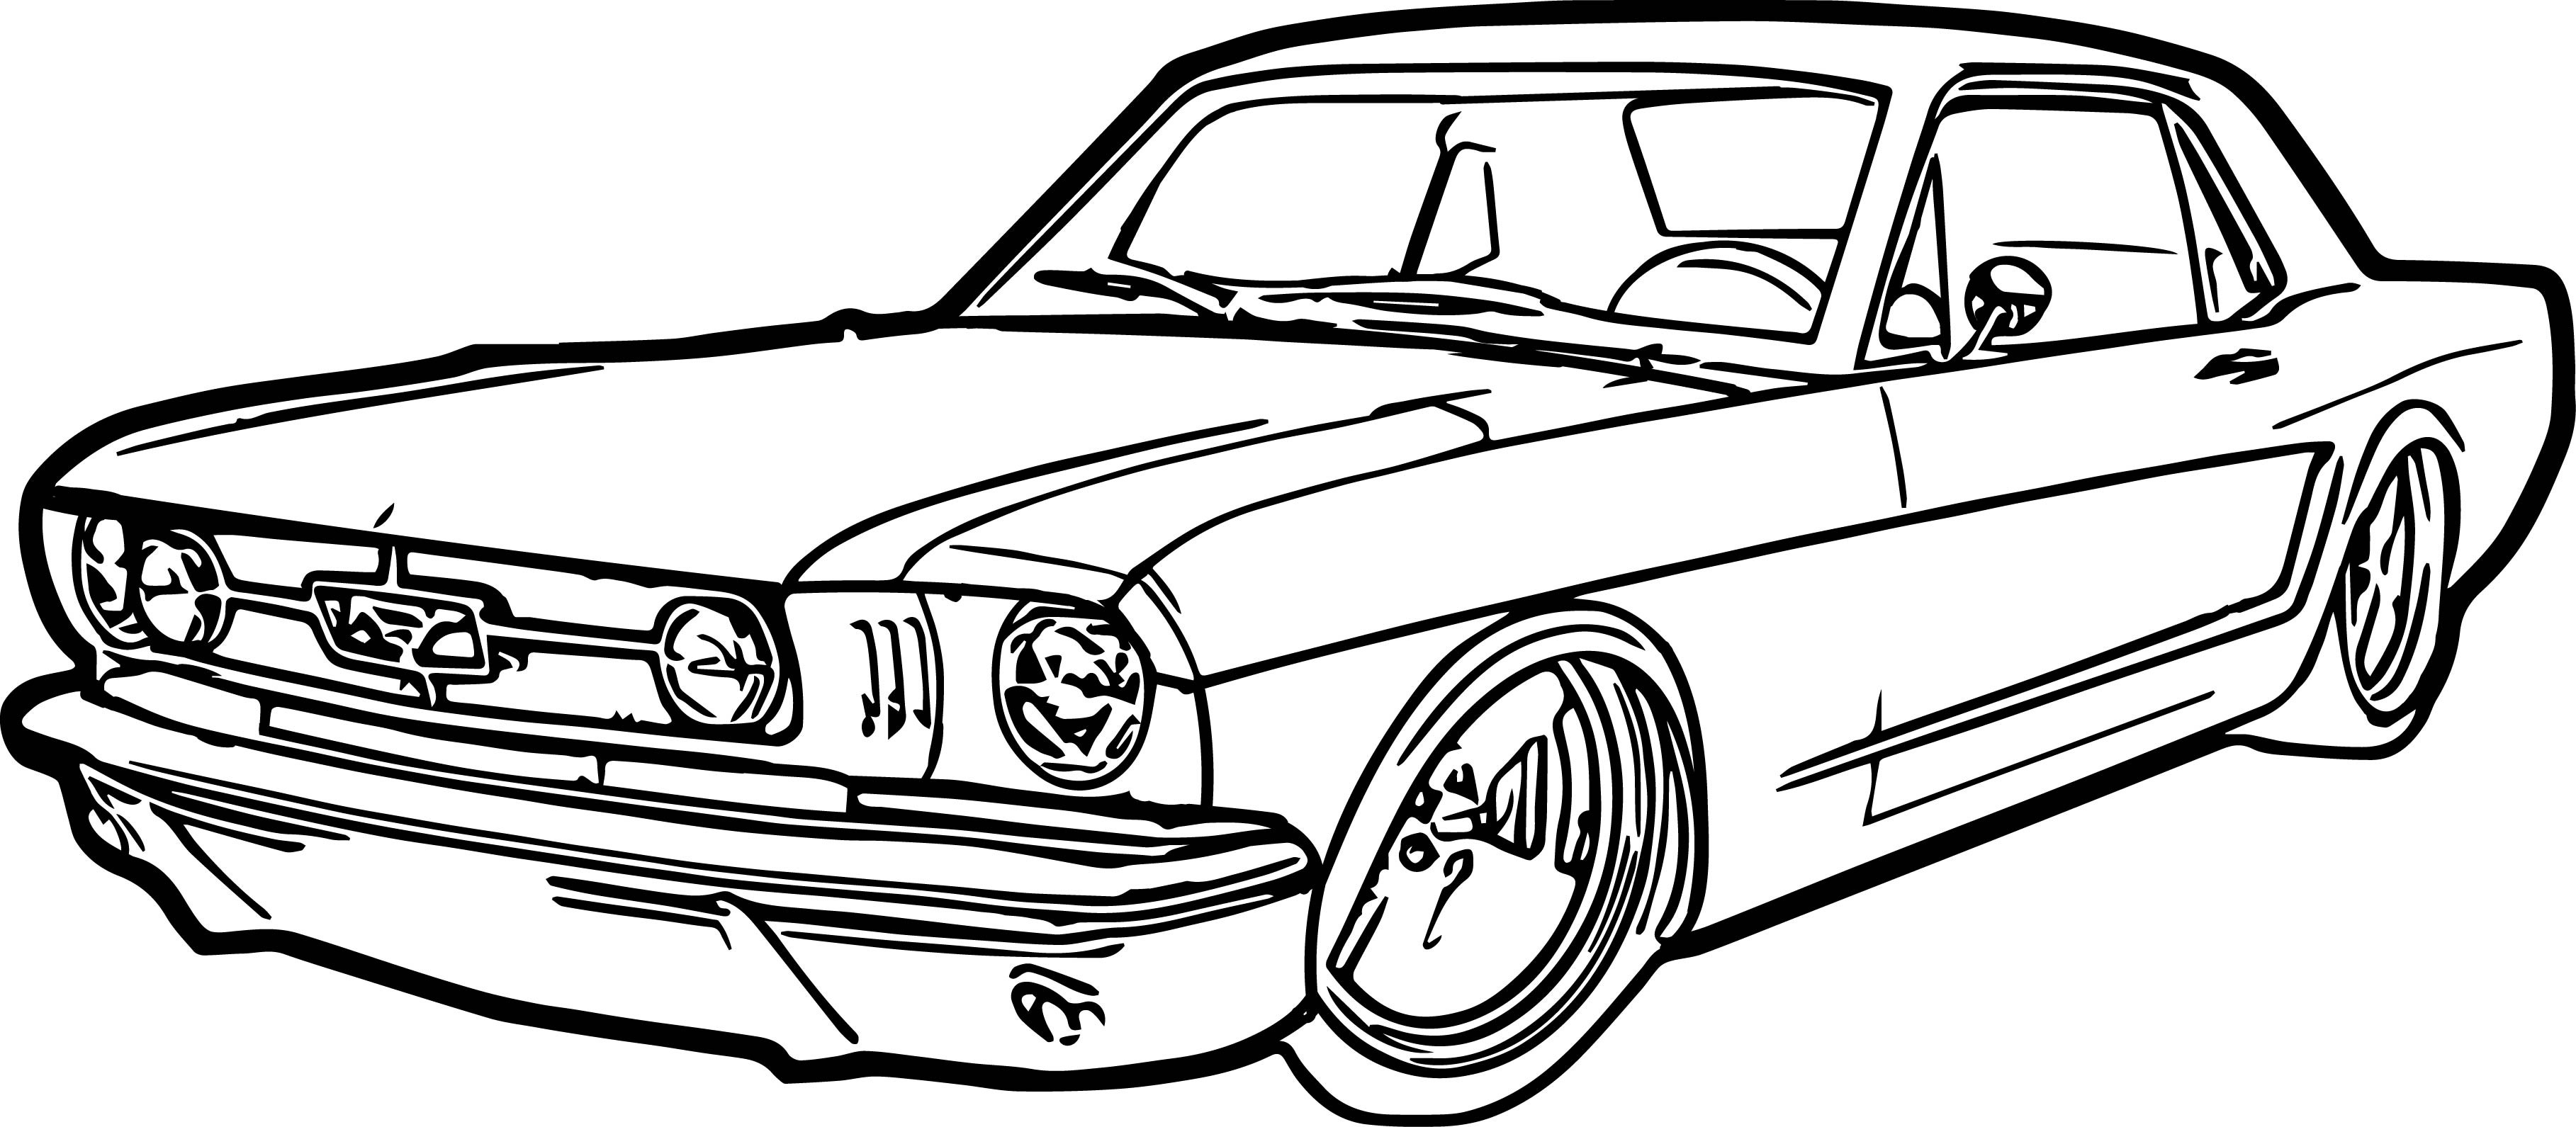 3635x1591 Interesting Demolition Derby Car Coloring Pages Pioneering